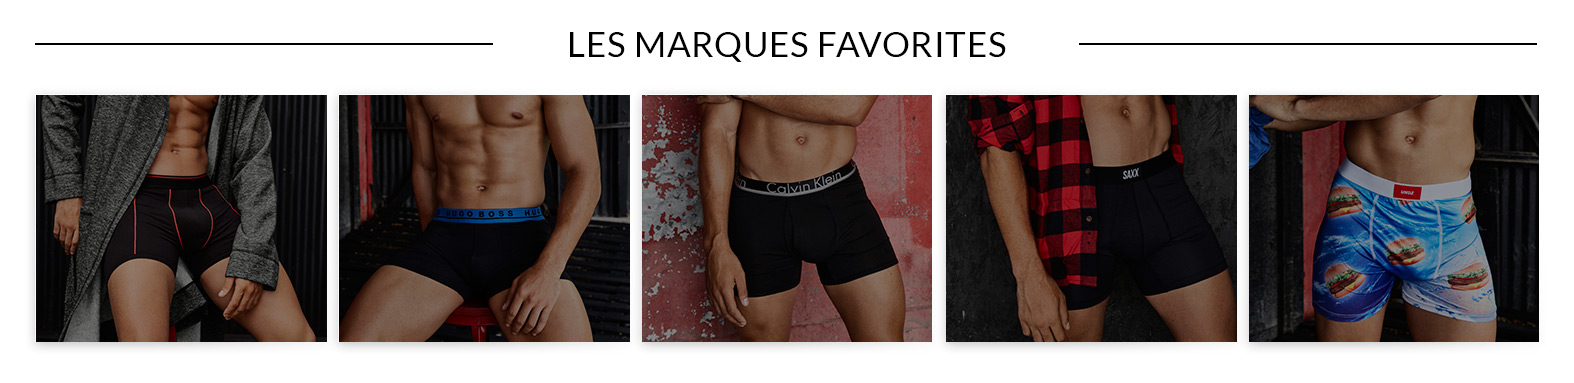 A18-BGL-SV-MARQUES FAVORITES-1.psd